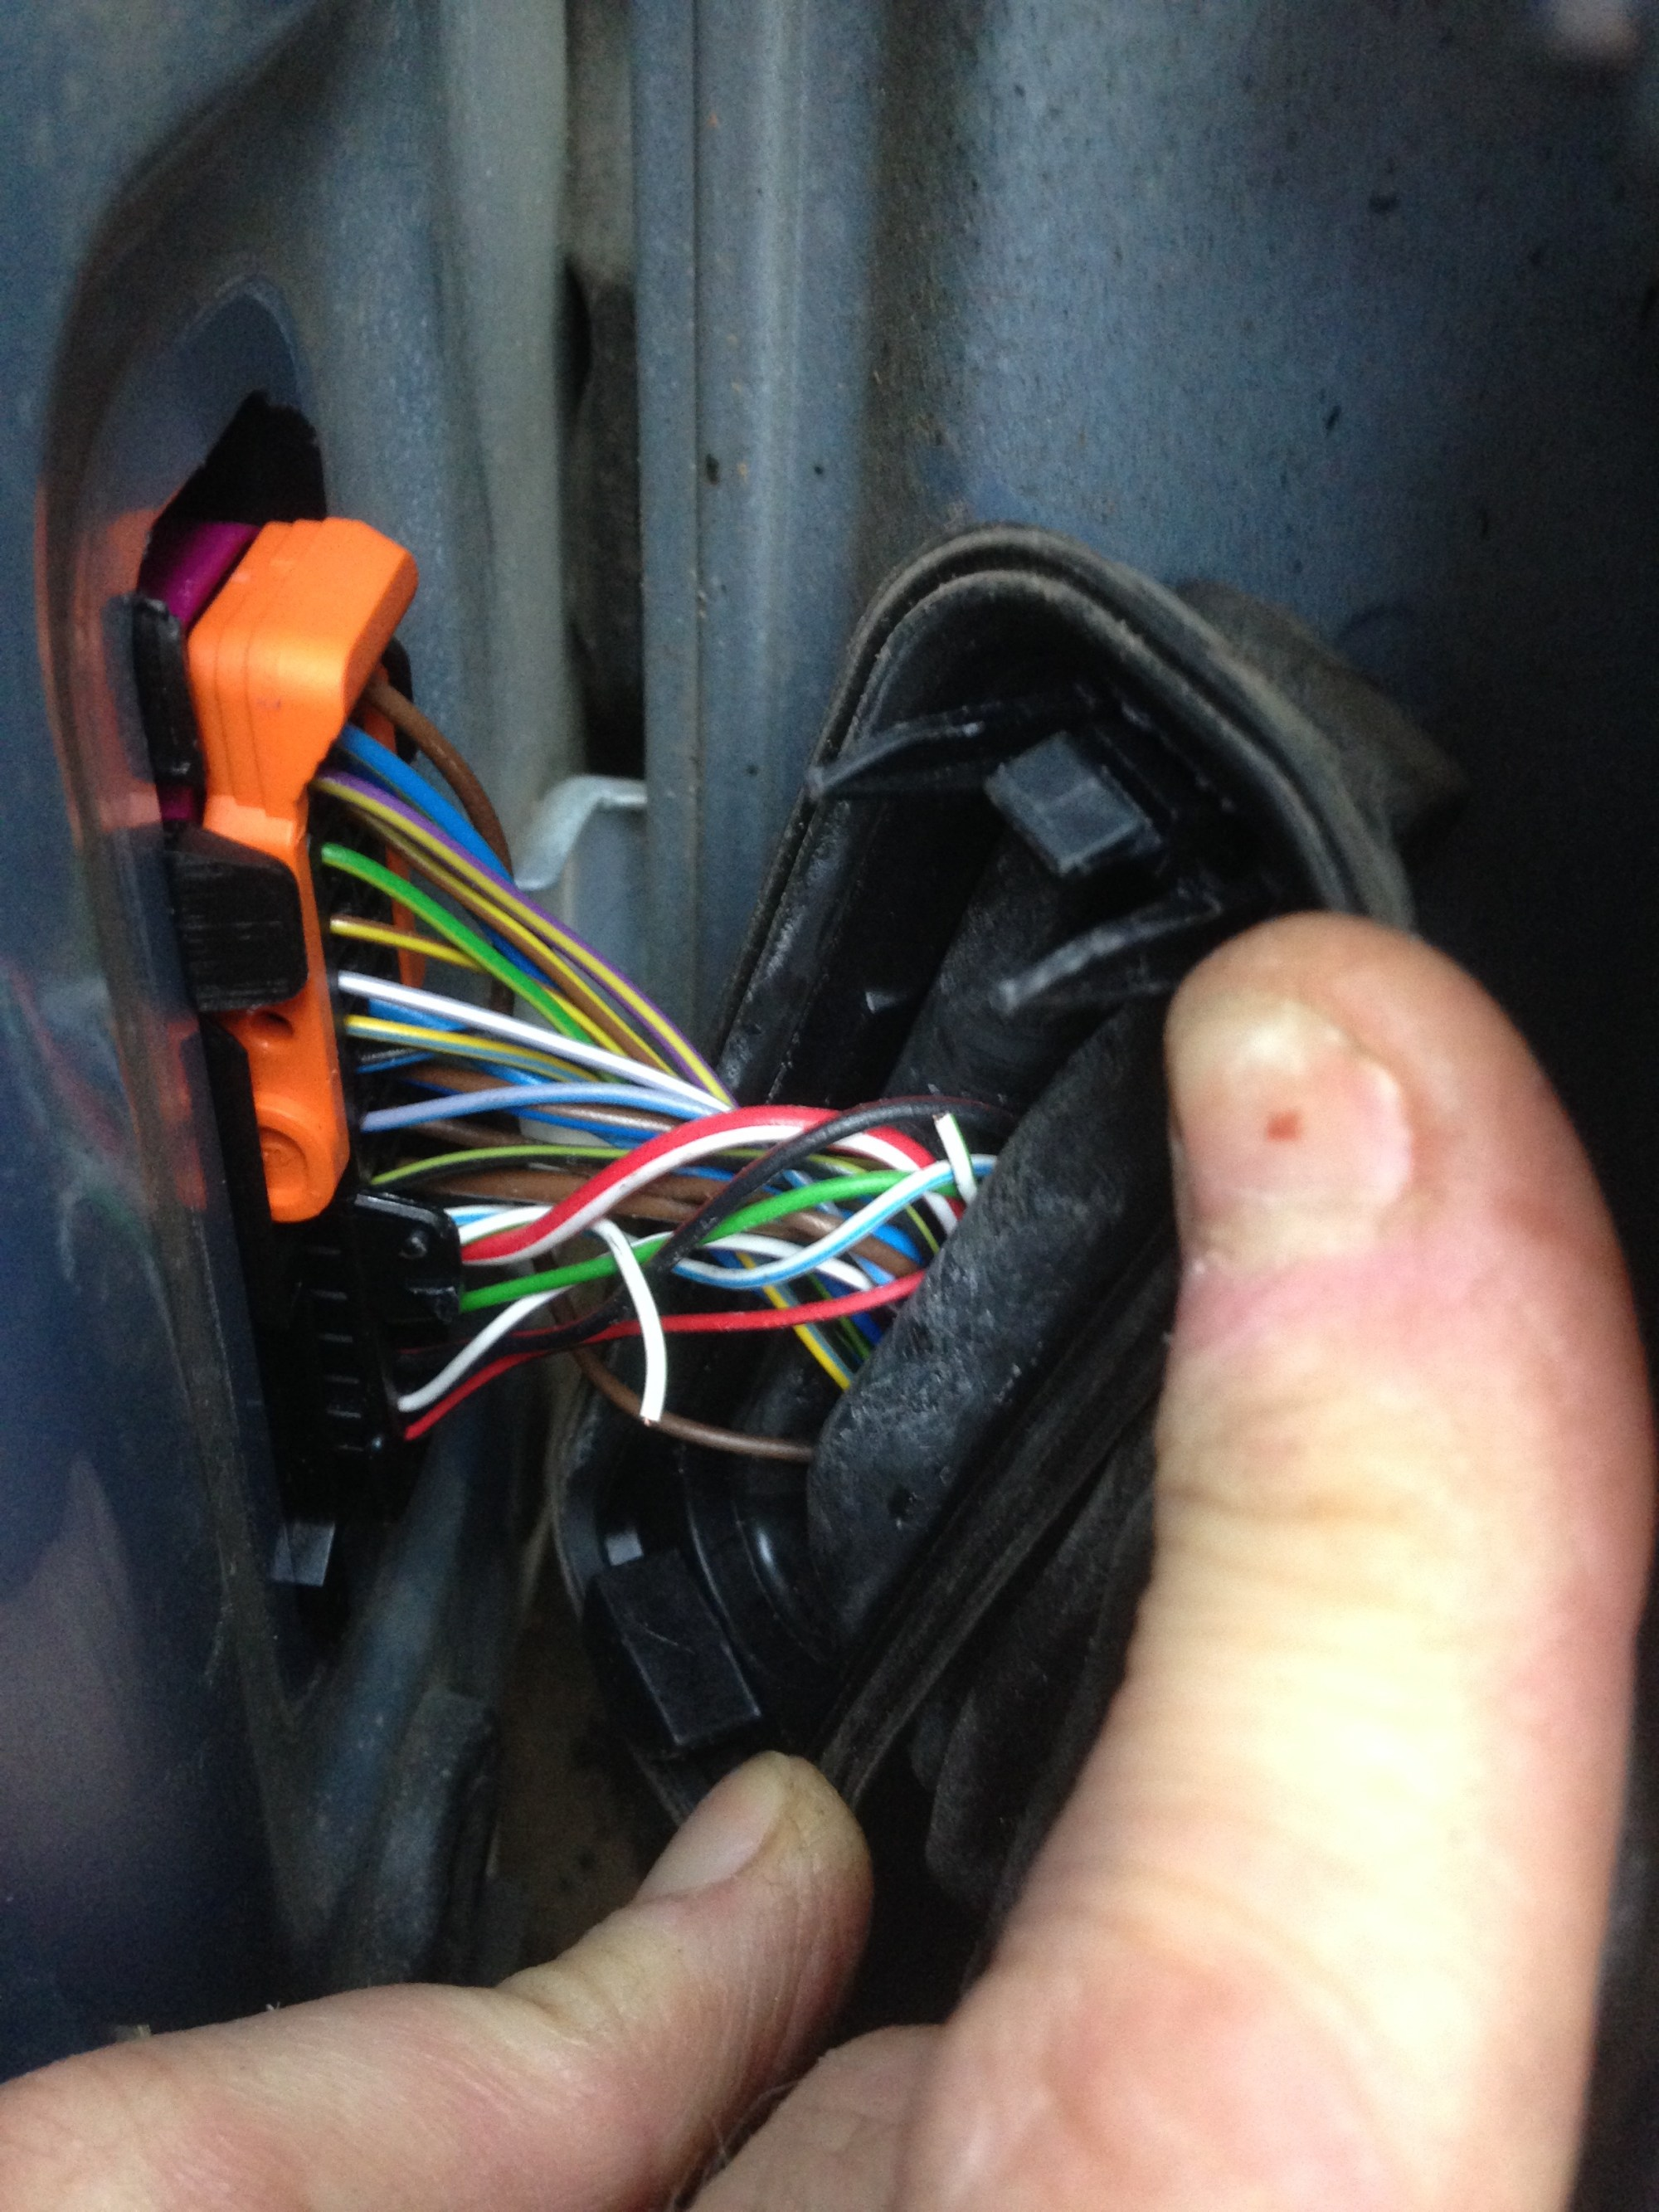 hight resolution of toms fabia doors wires at hinge 09dec15 jpg